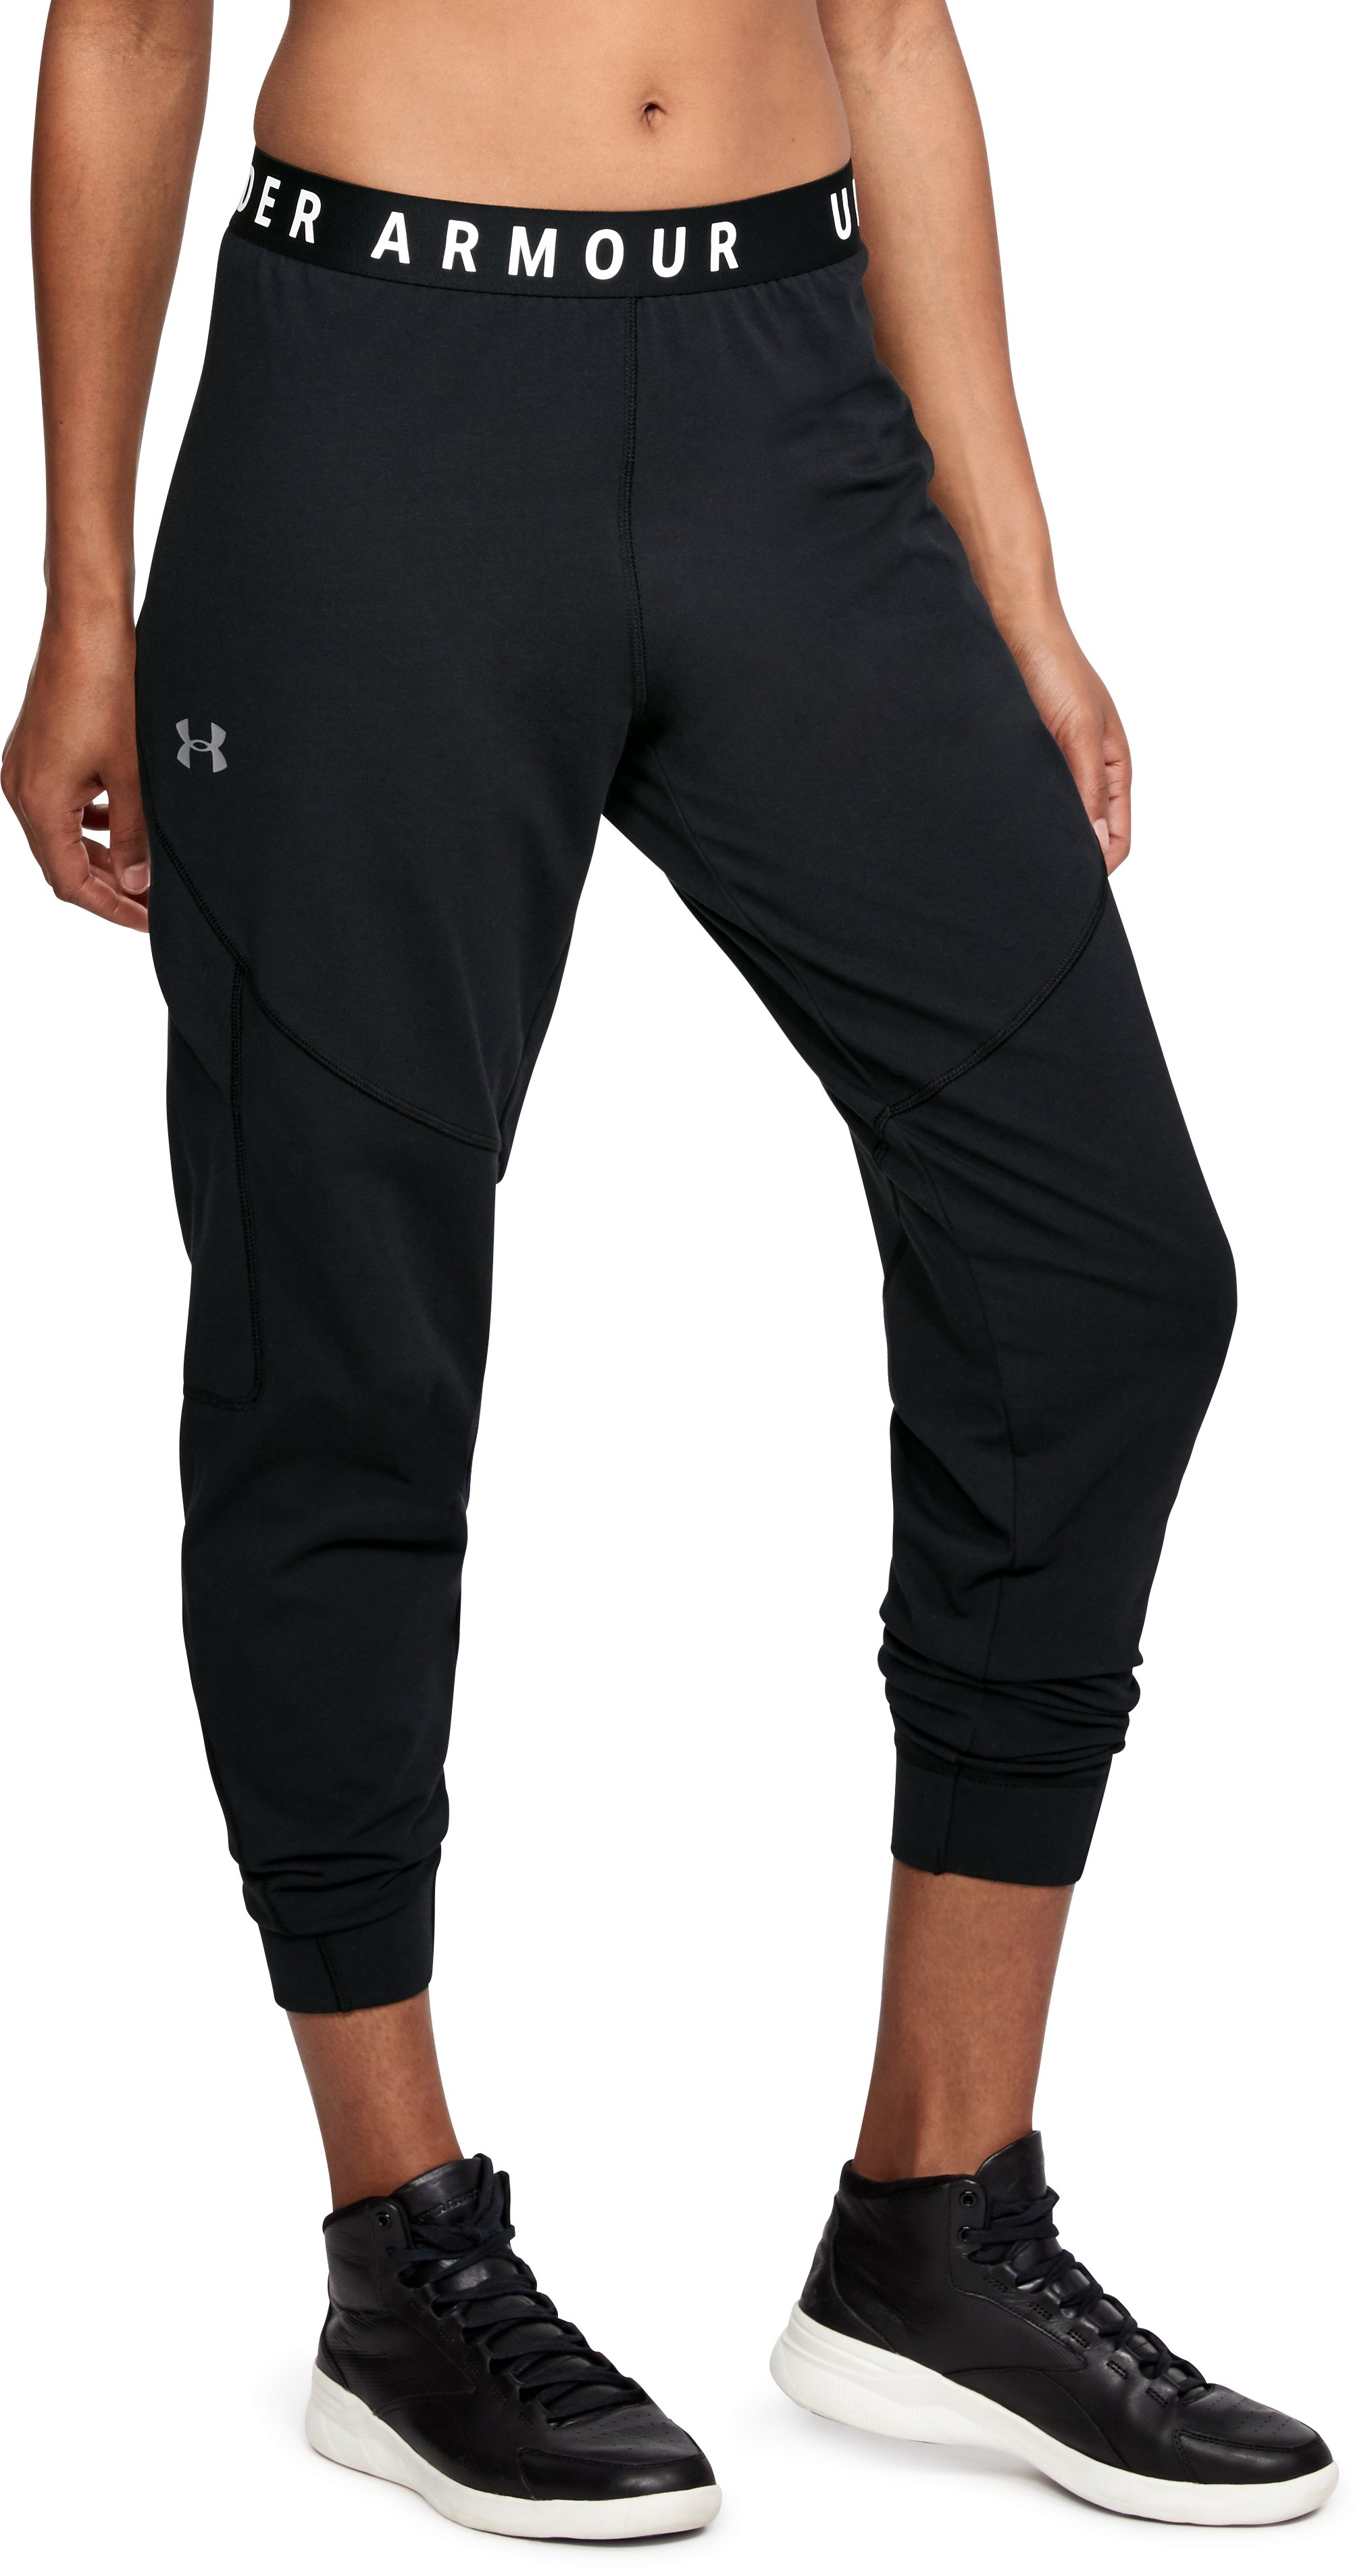 black cargo pants Women's UA Favorite Utility Cargo Pants They wear well (some pilling but that's pretty standard), wash well, and fit great....The style is neutral enough that I can wear it with a wide variety of things, but the extra-seaming and pockets add a nice extra touch.